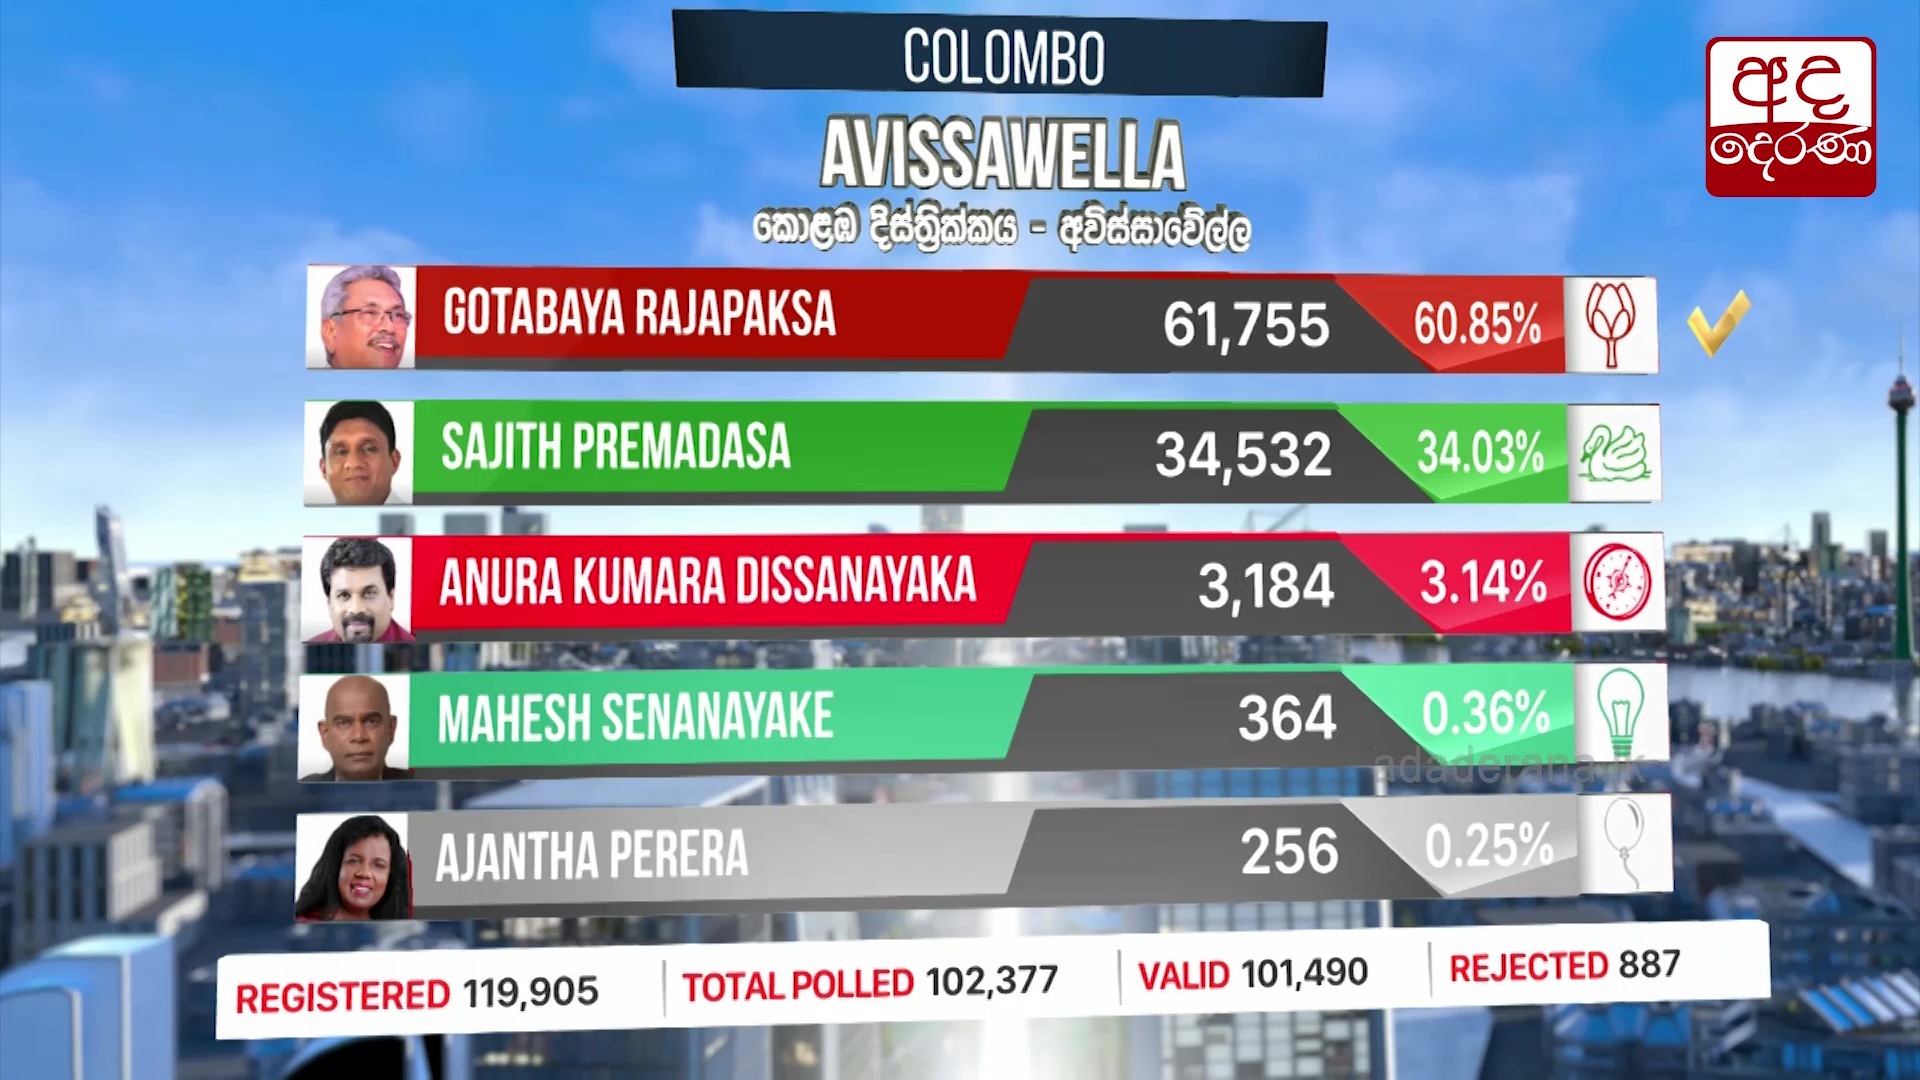 Presidential Election 2019: Awissawella division results